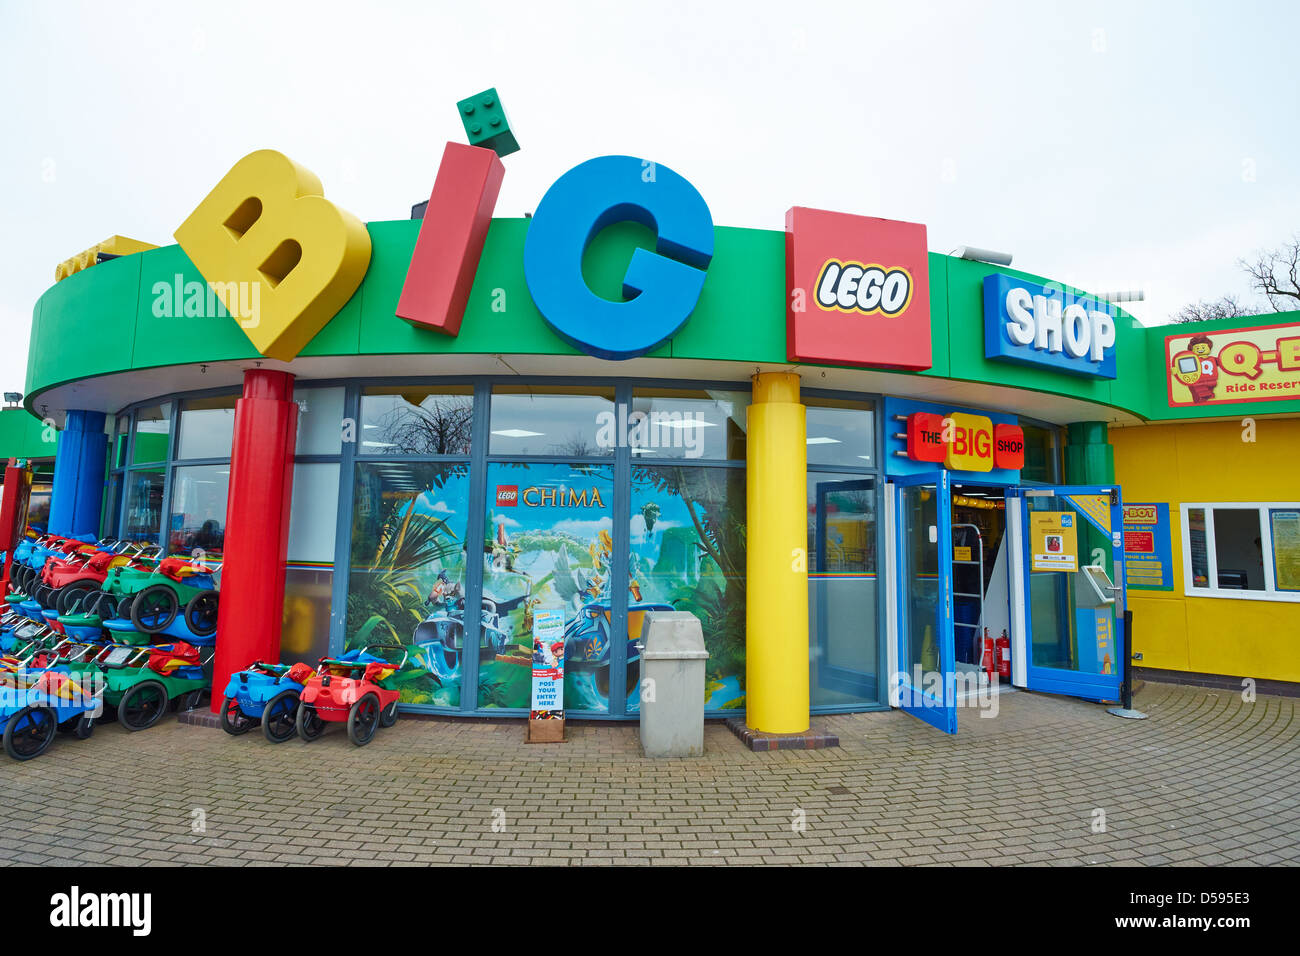 Nov 21,  · Awesome Lego shop Lots of fun Lego items to buy including exclusive items, the create your own minifigures is great fun, many interesting Lego displays to /5().